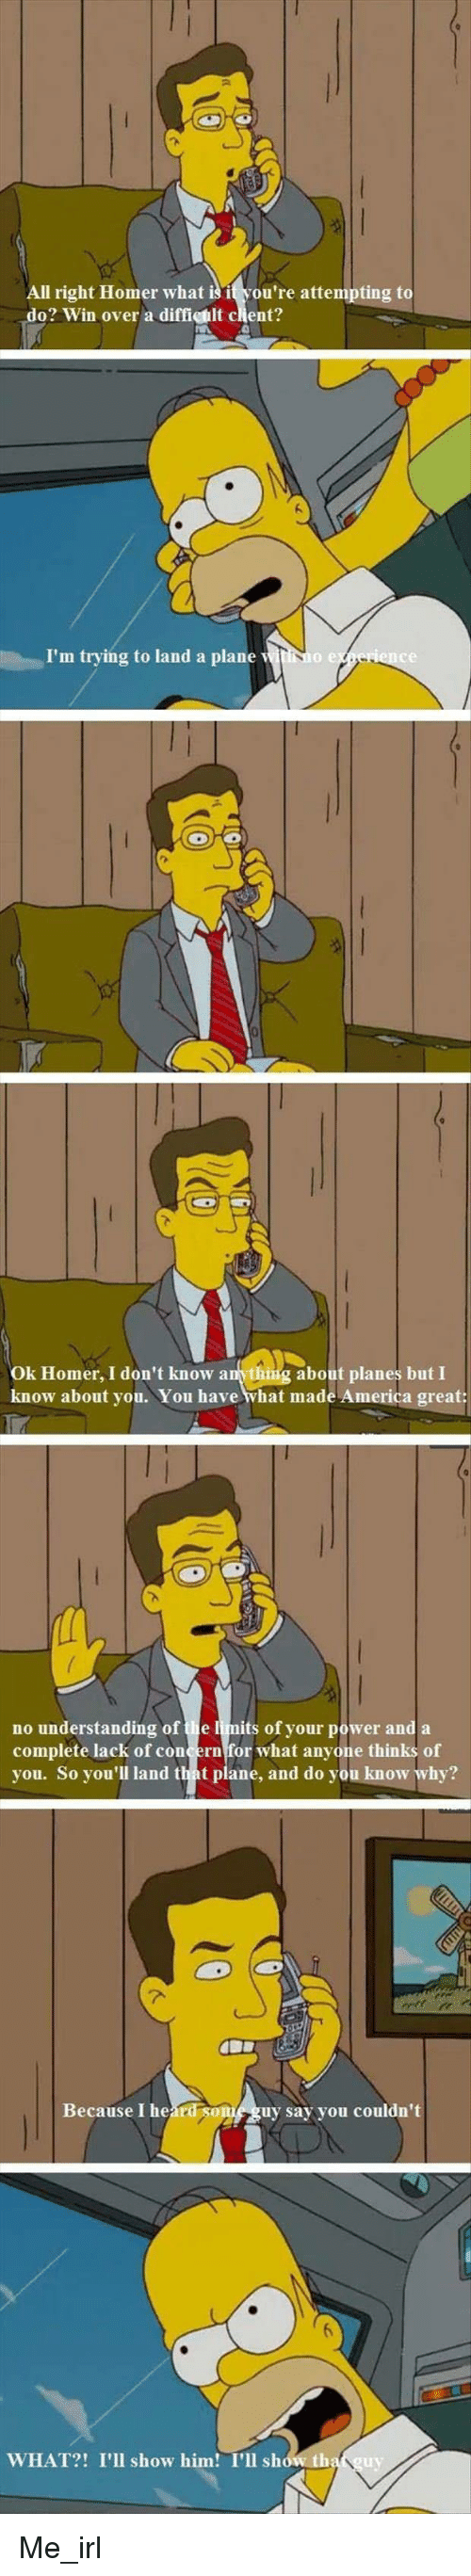 America, Power, and Homer: All right Homer what isit you're attempting to  do? Win over a diffichit clent?  I'm trying to land a plane witNI  се  Ok Homer, I don't know anvthig about planes but I  know about you. You have what made America great:  no understanding of the limits of your power and a  complete lack of concern for what anyone thinks of  you. So you'll land that plane, and do you know why?  Because I heard soniguy sy you couldn't  WHAT?! I'Il show him! I'll show th Me_irl